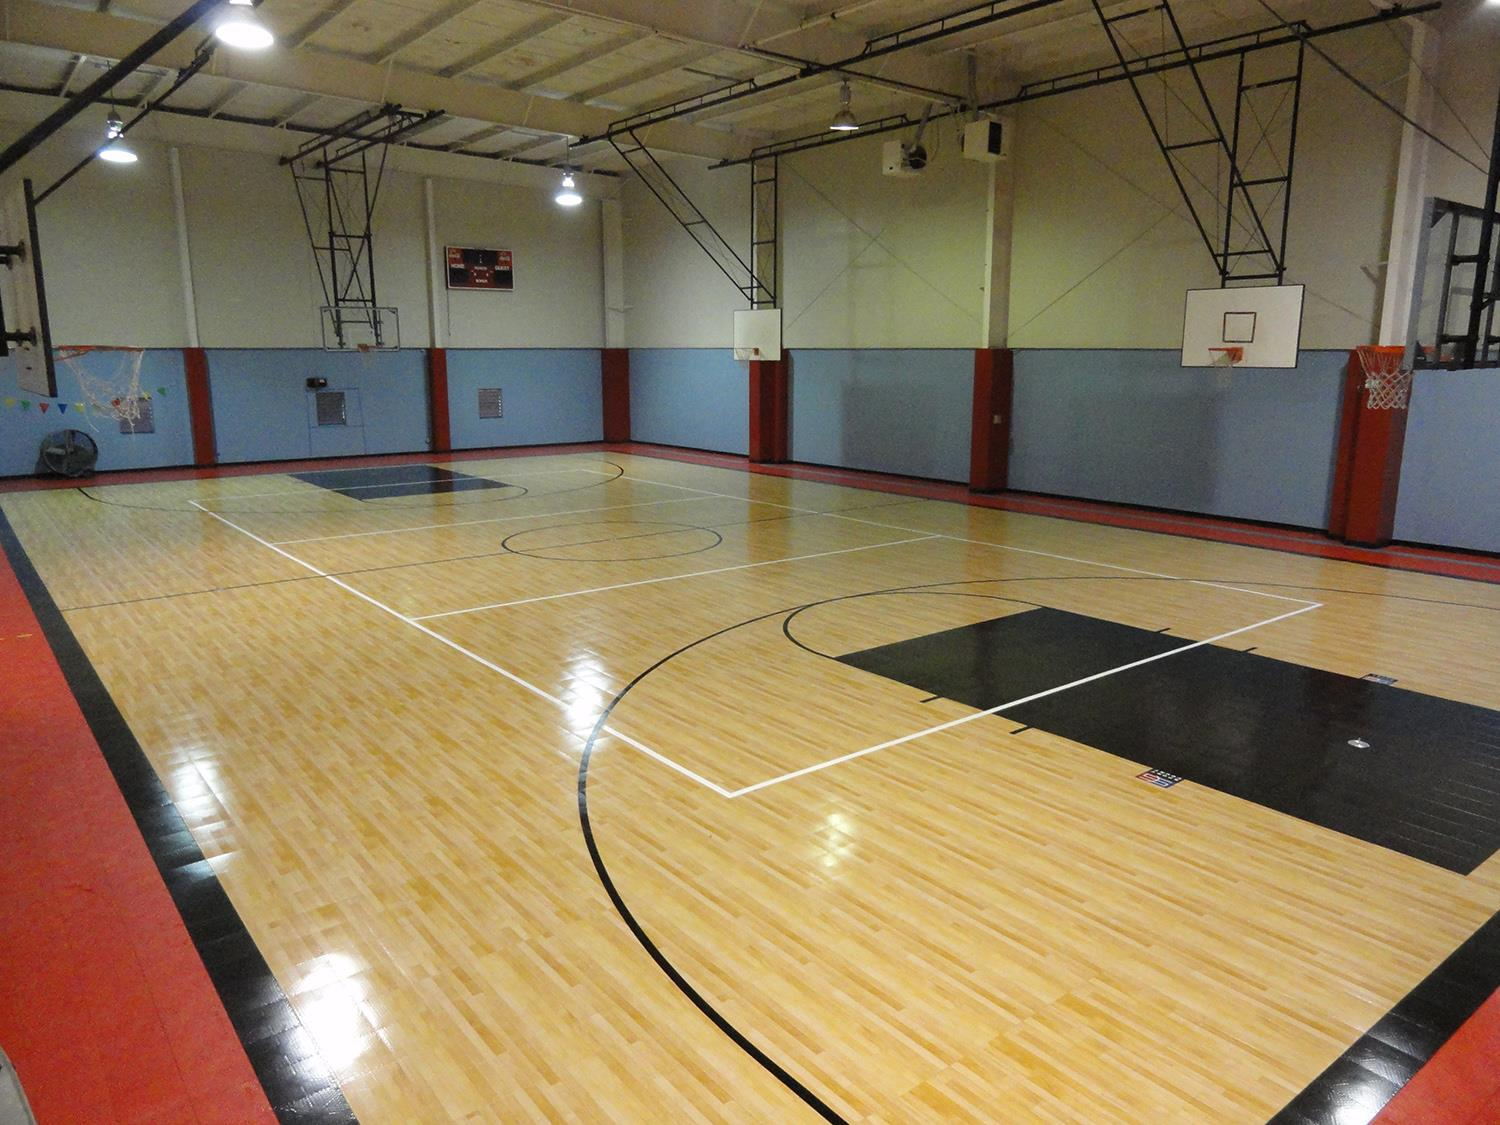 Texas Highschool Upgrades Sport CourtⓇ Gym Floor to MapleSelect™